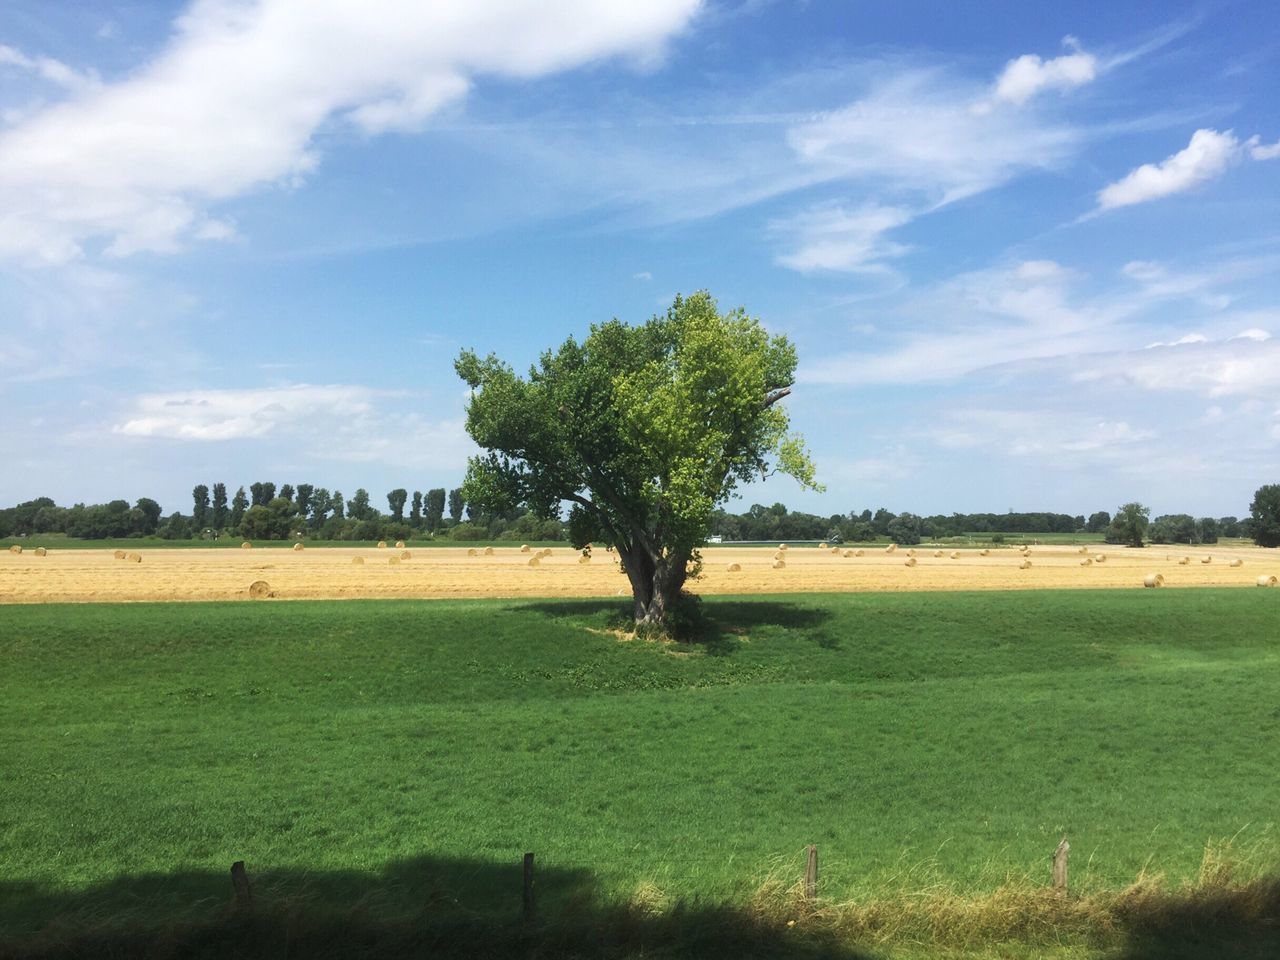 Tree Landscape Beauty In Nature Field Tranquil Scene Nature Tranquility Scenics Sky Grass Growth Cloud - Sky Day No People Green Color Agriculture Sunlight Rural Scene Outdoors